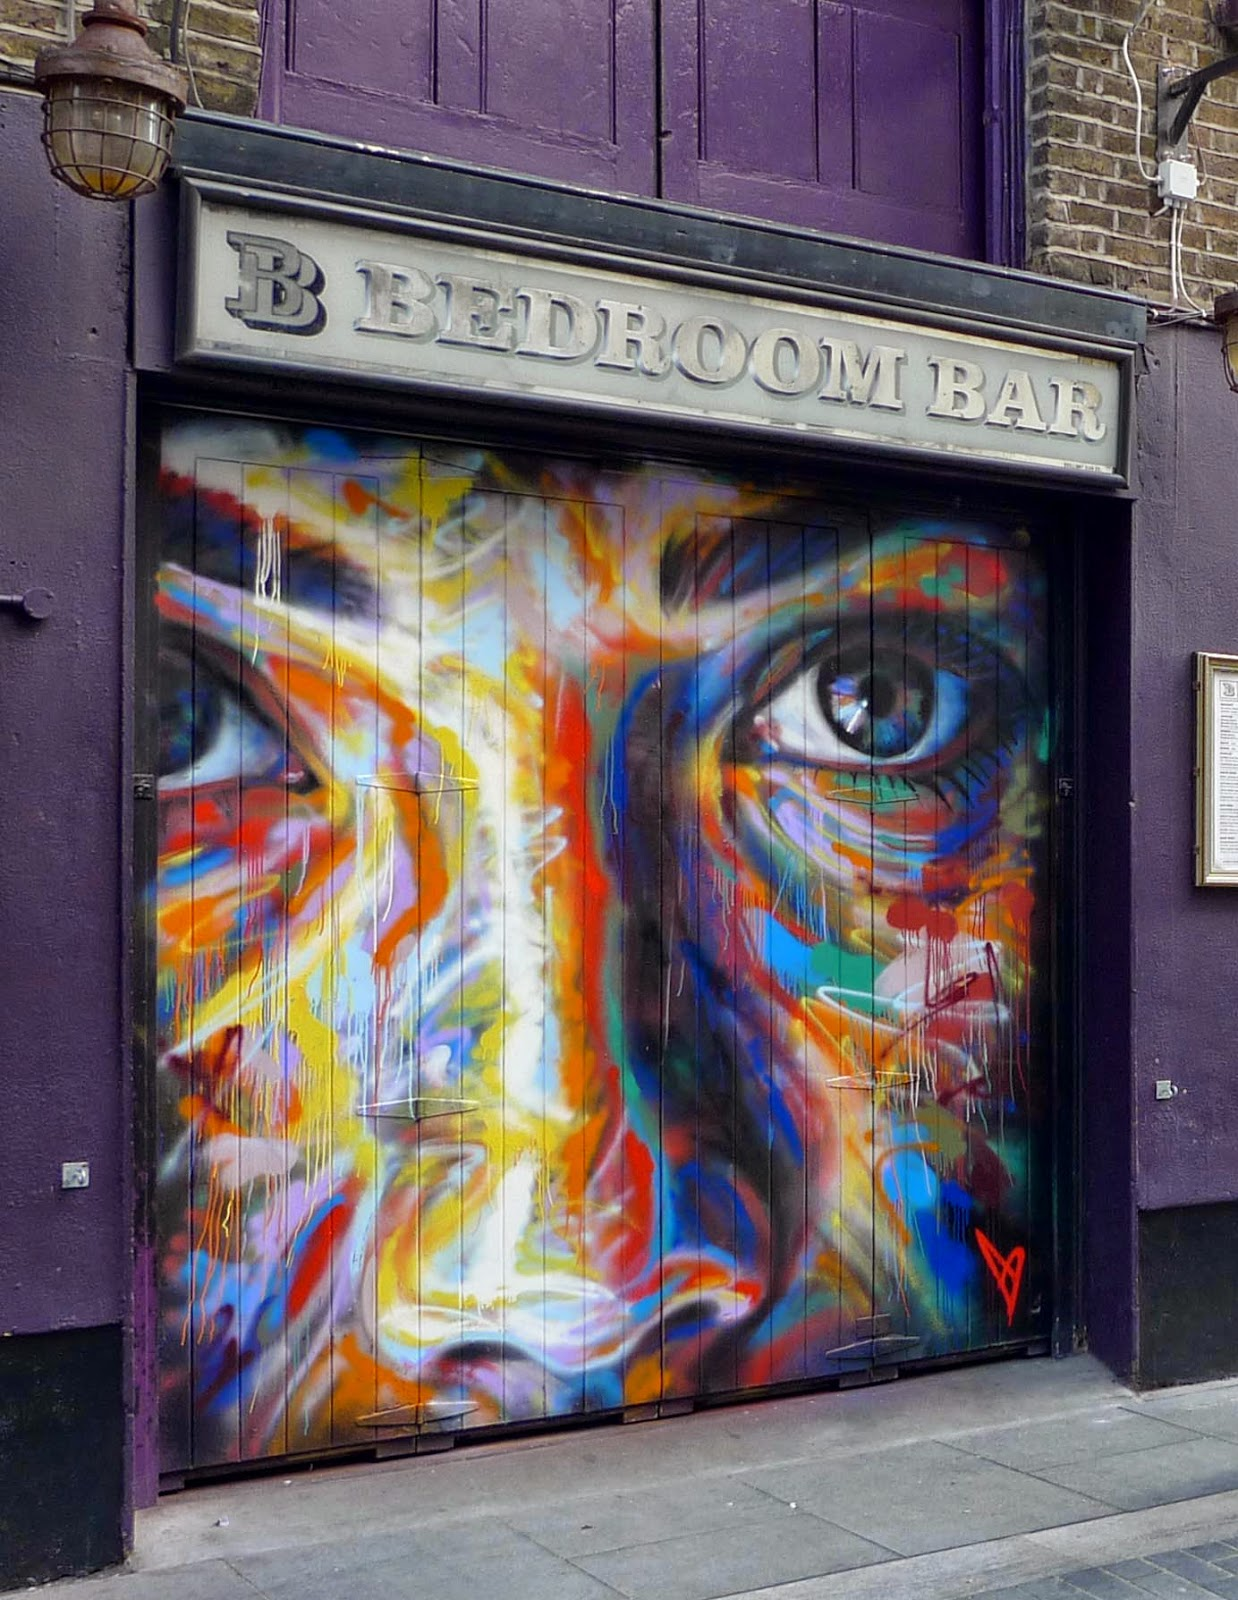 David Walker is back in London, UK where he just finished working on that new piece in the district of Shoreditch.